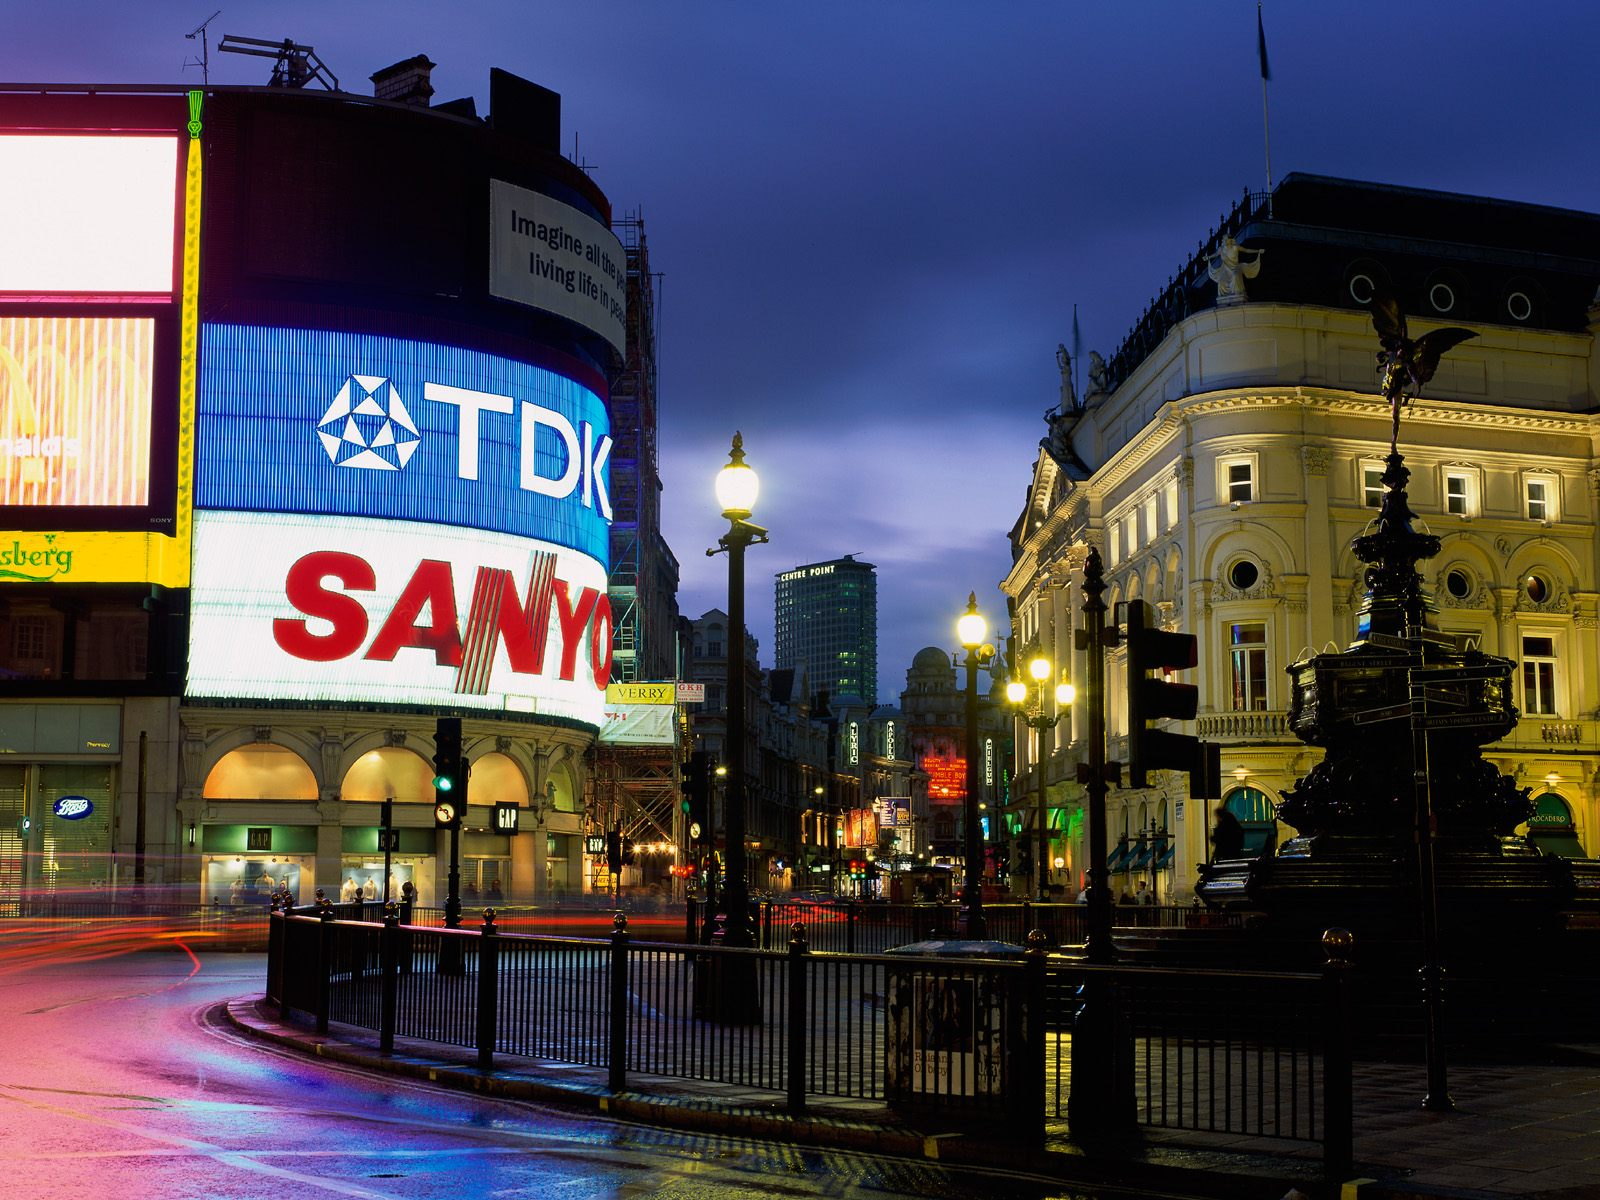 Piccadilly Circus London3766515927 - Piccadilly Circus London - Treasure, Piccadilly, London, Circus